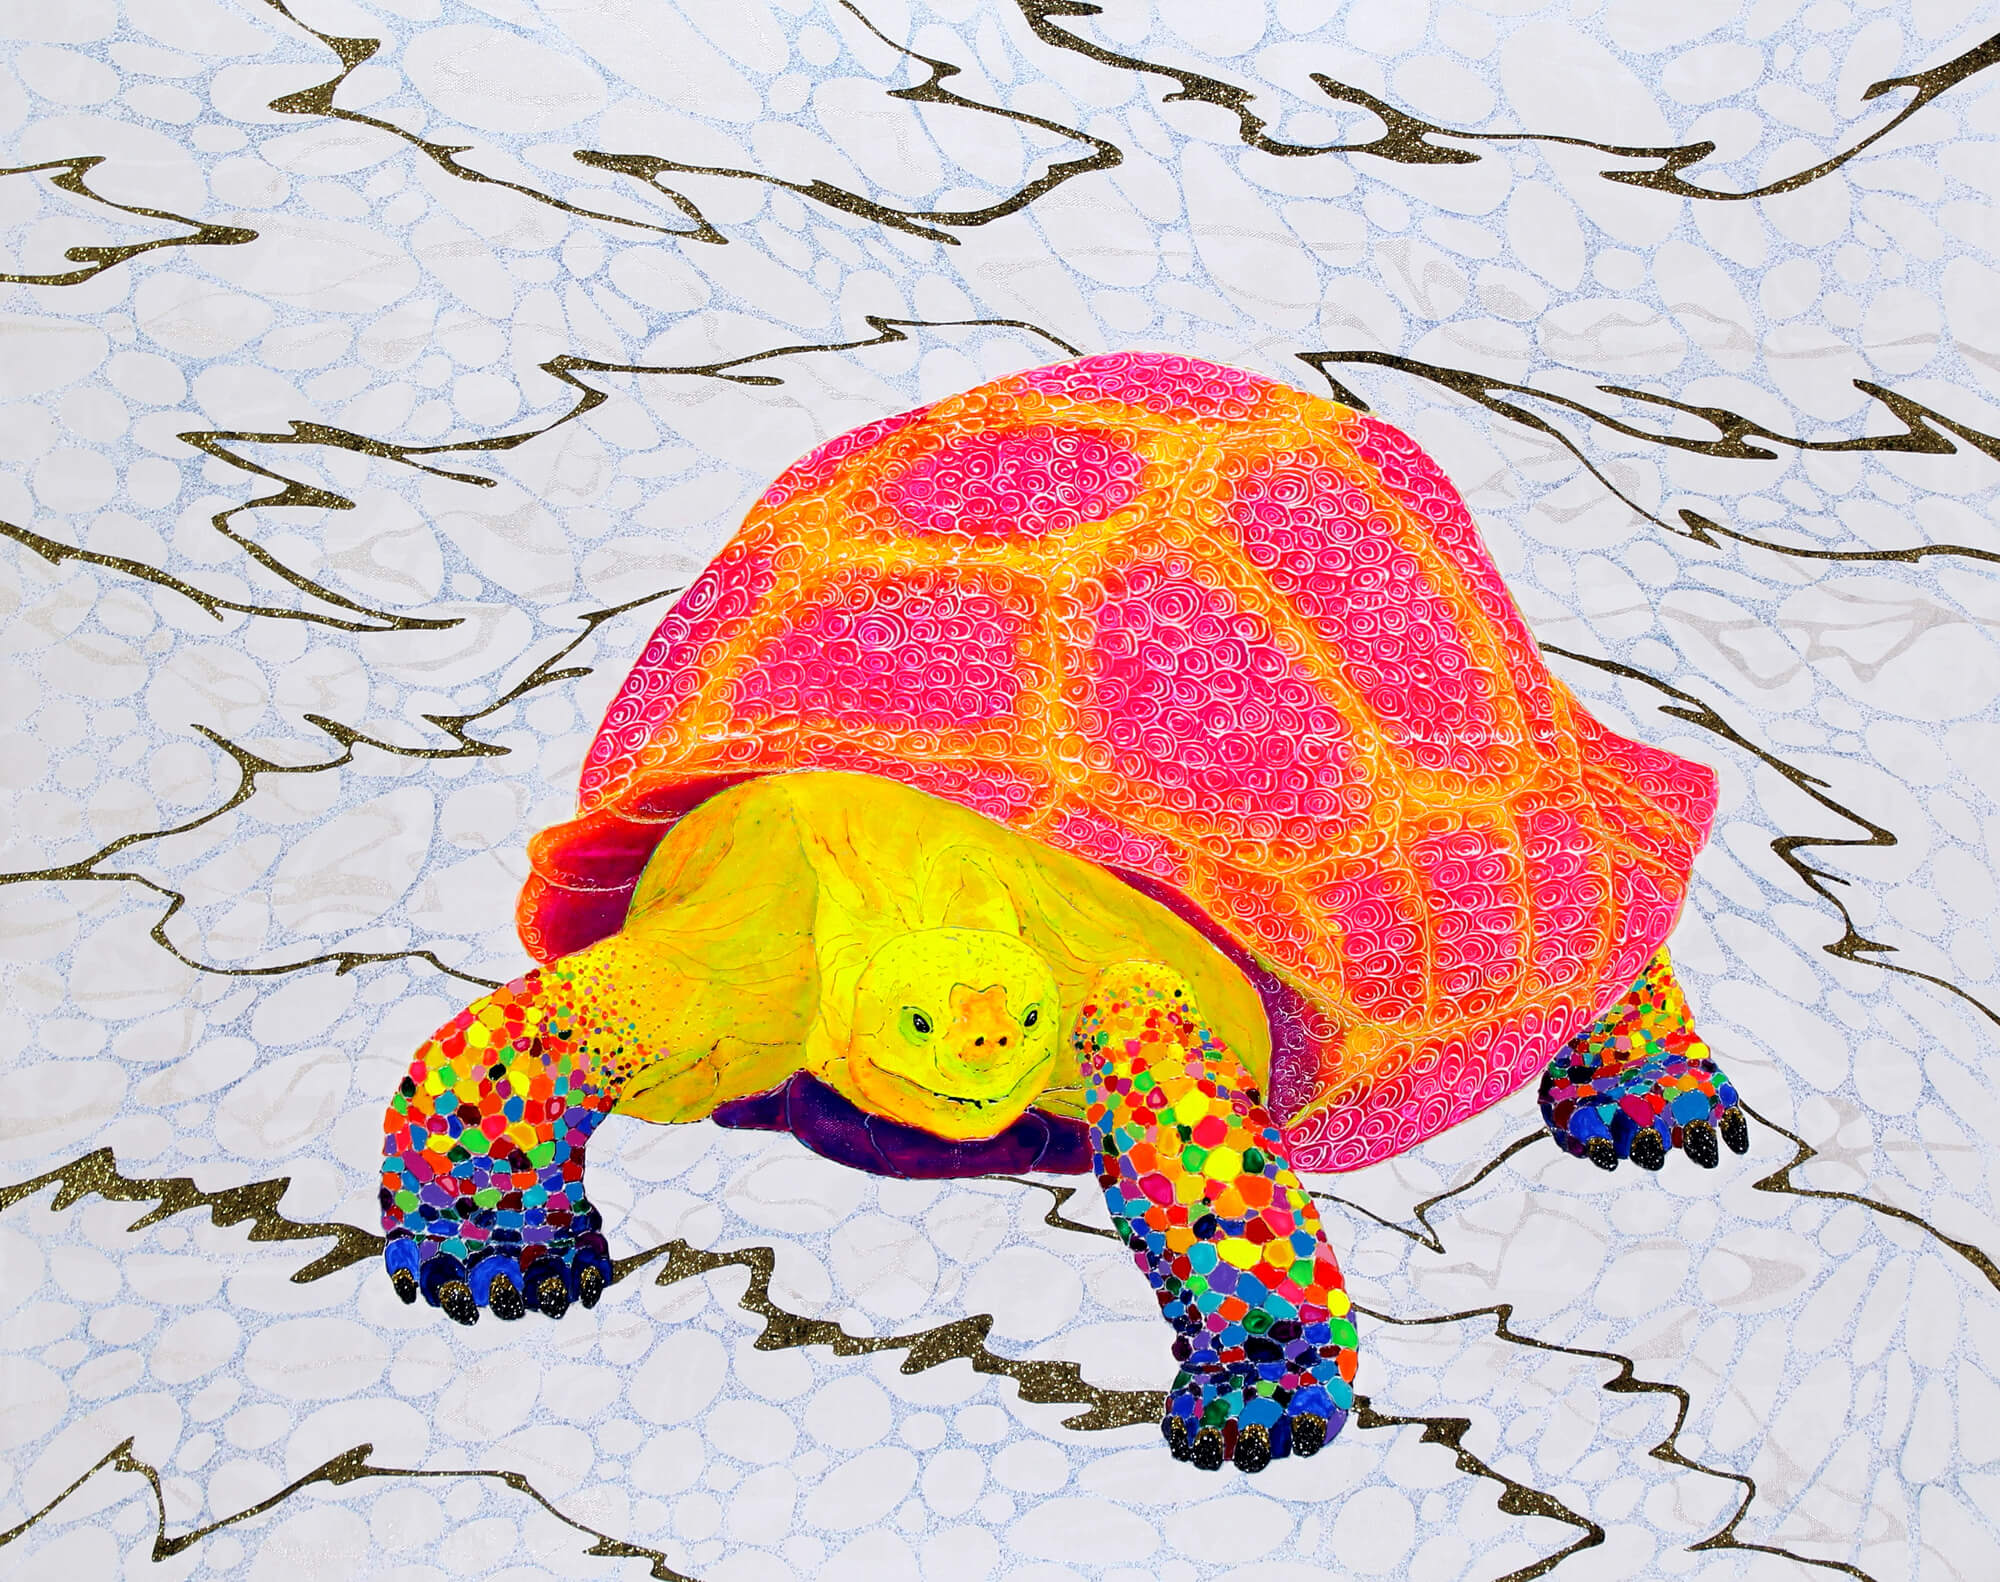 Momoirodori Tortoise-KASUMI改行 Acrylic and glitter on canvas,910×727mm, 2016